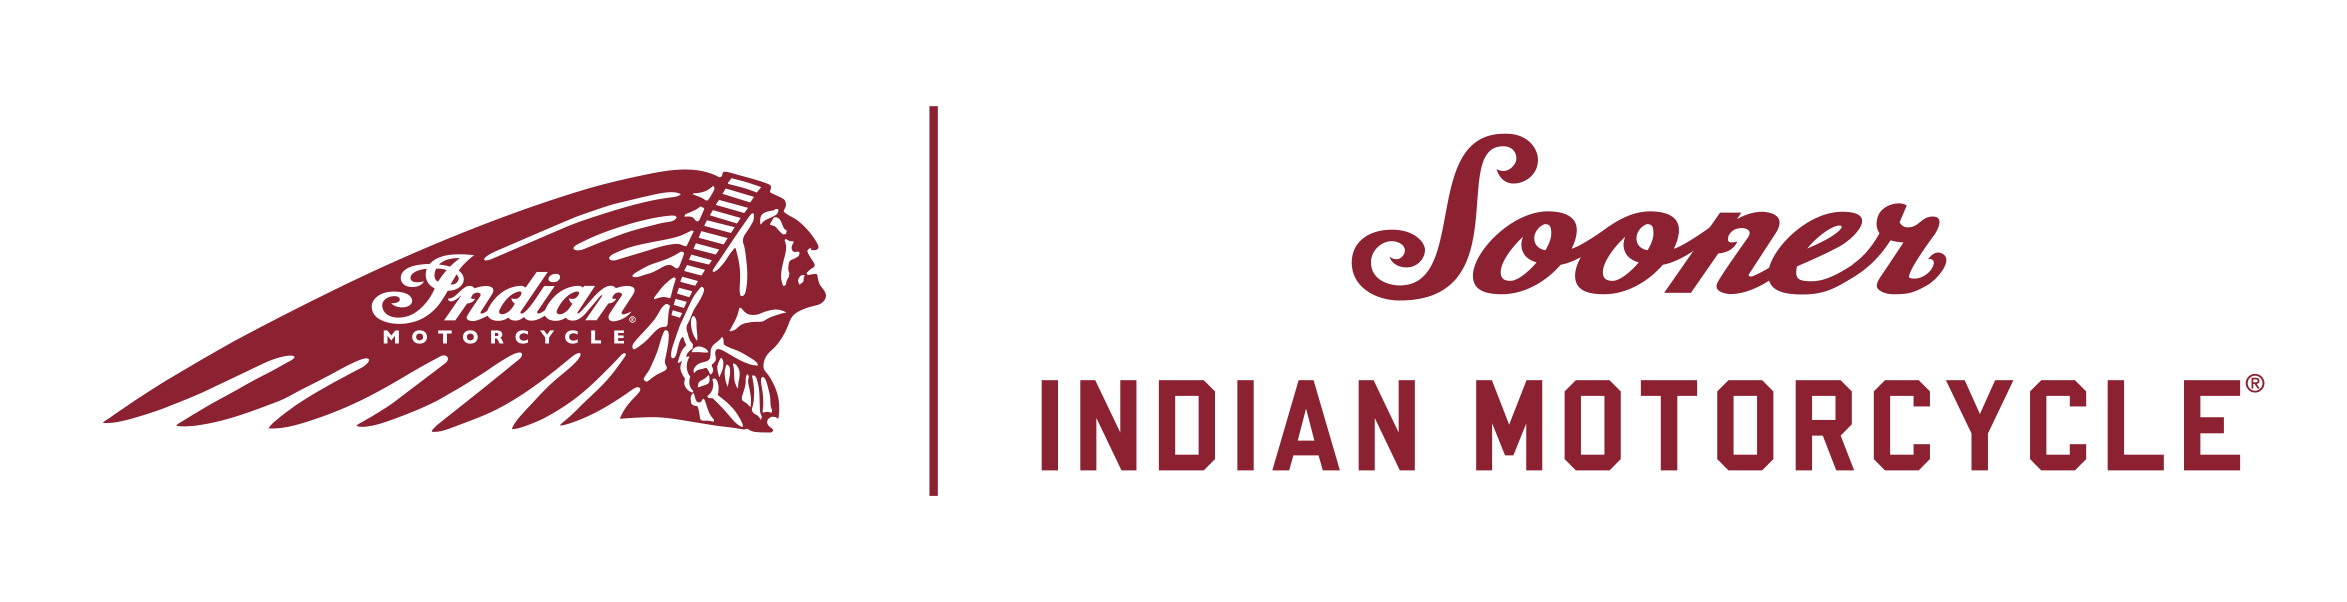 Sooner Indian Motorcycle Headress Logo